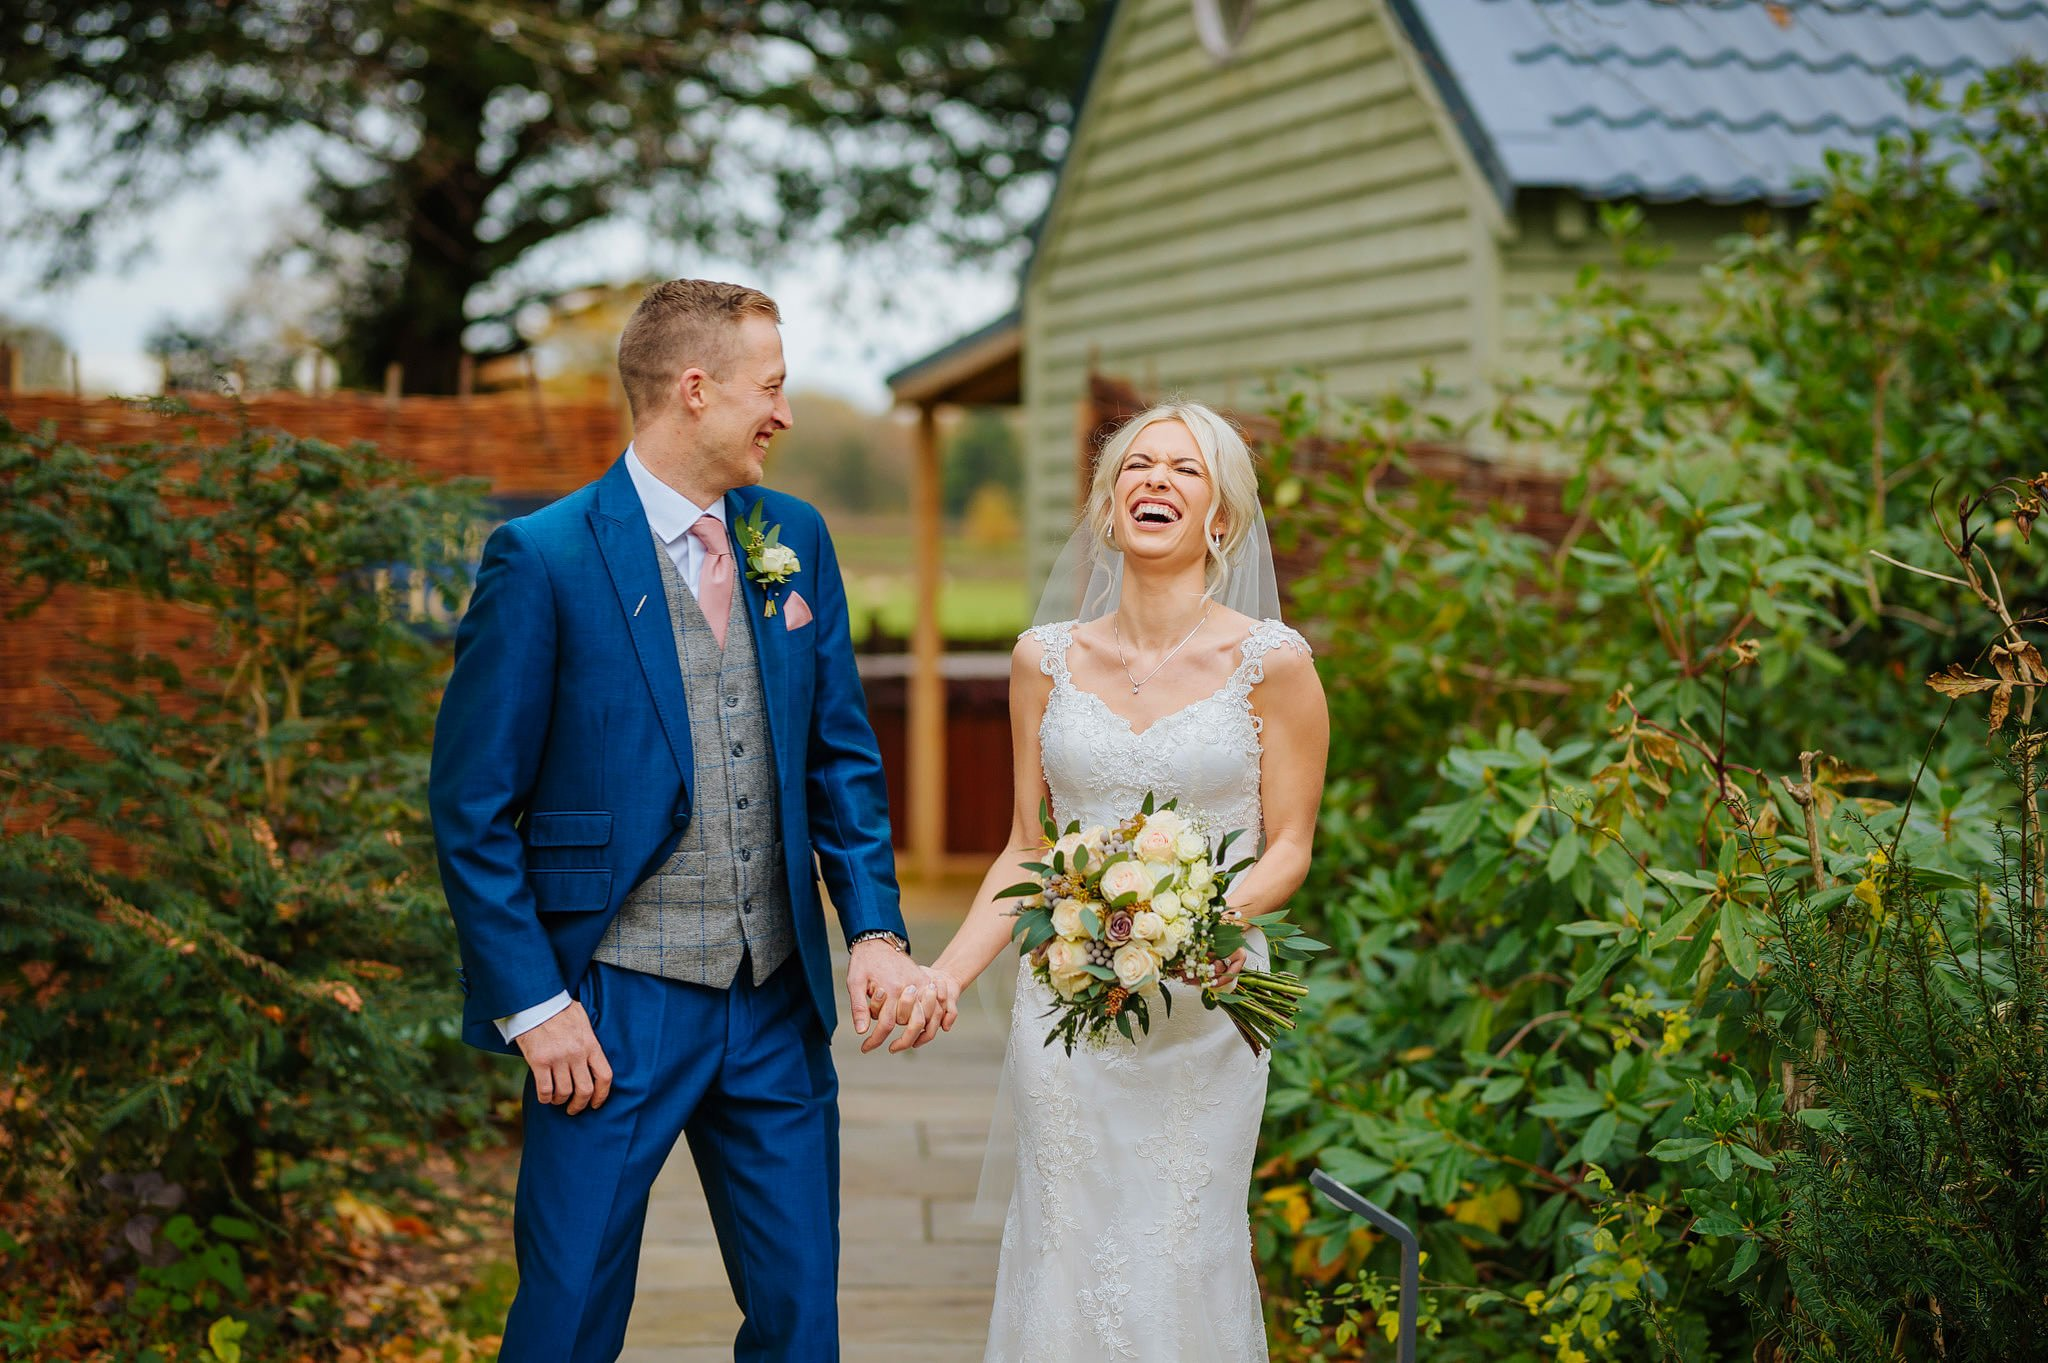 Sigma 85mm F1.4 ART review vs Wedding Photography 5